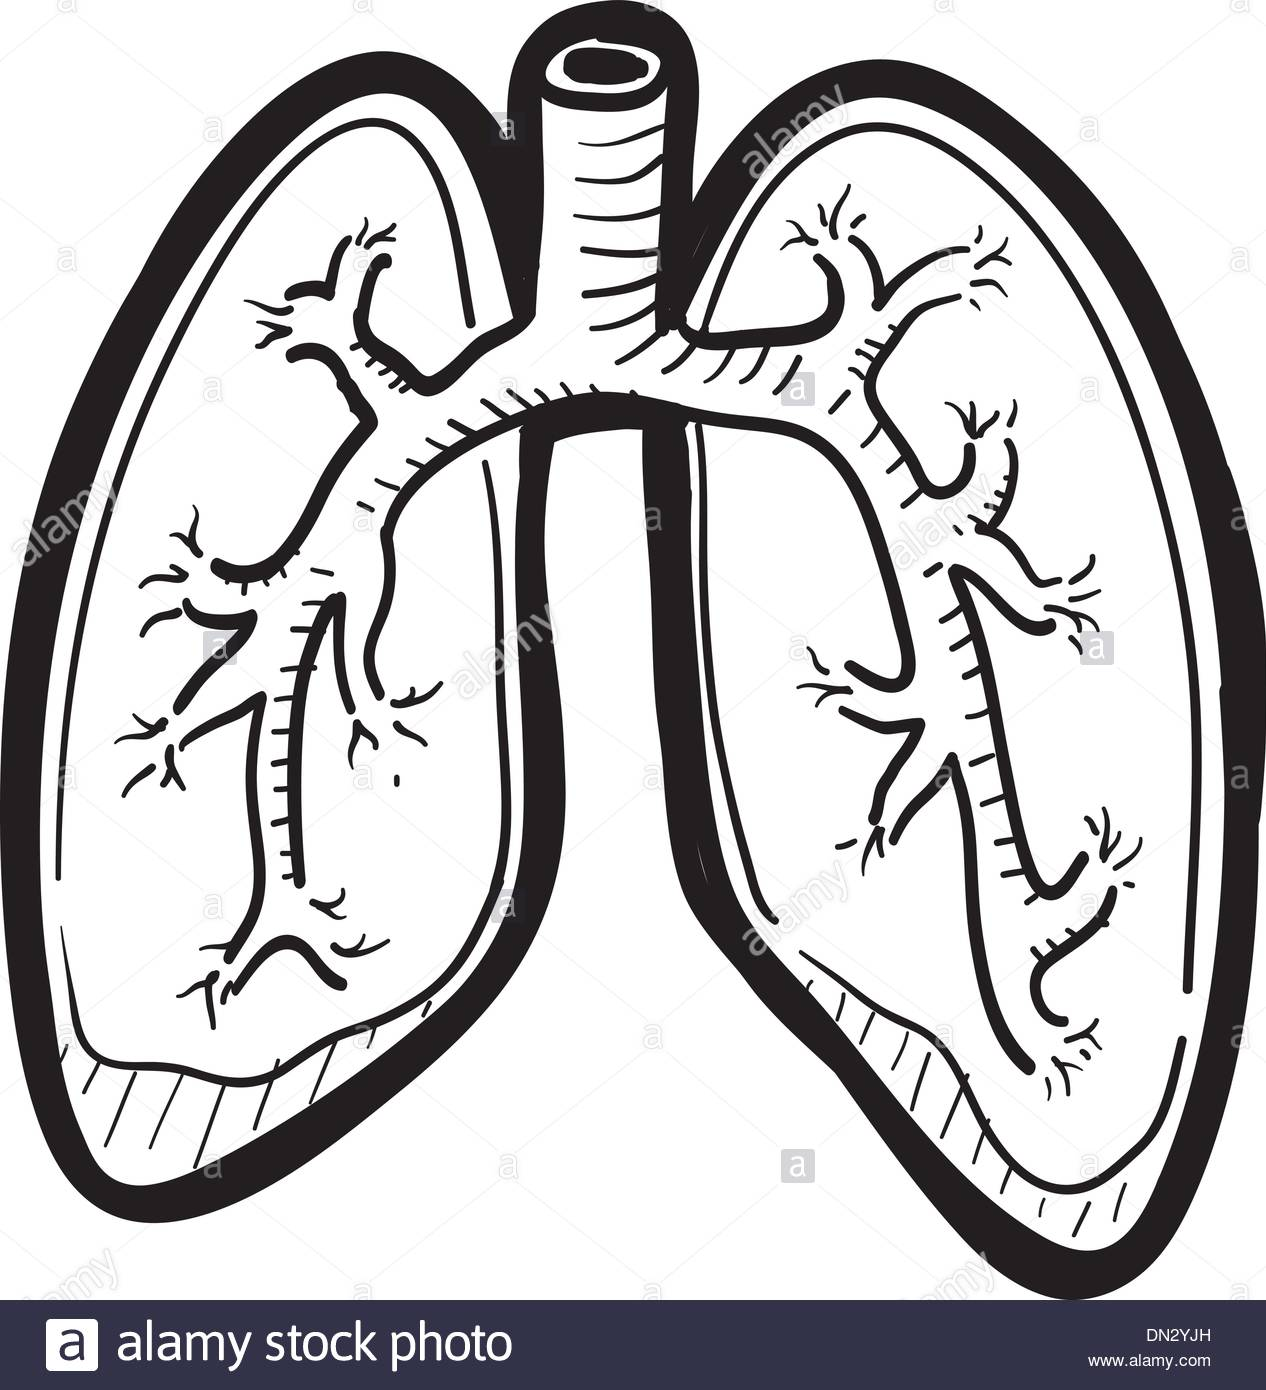 1266x1390 Human Lung Sketch Stock Vector Art Amp Illustration, Vector Image